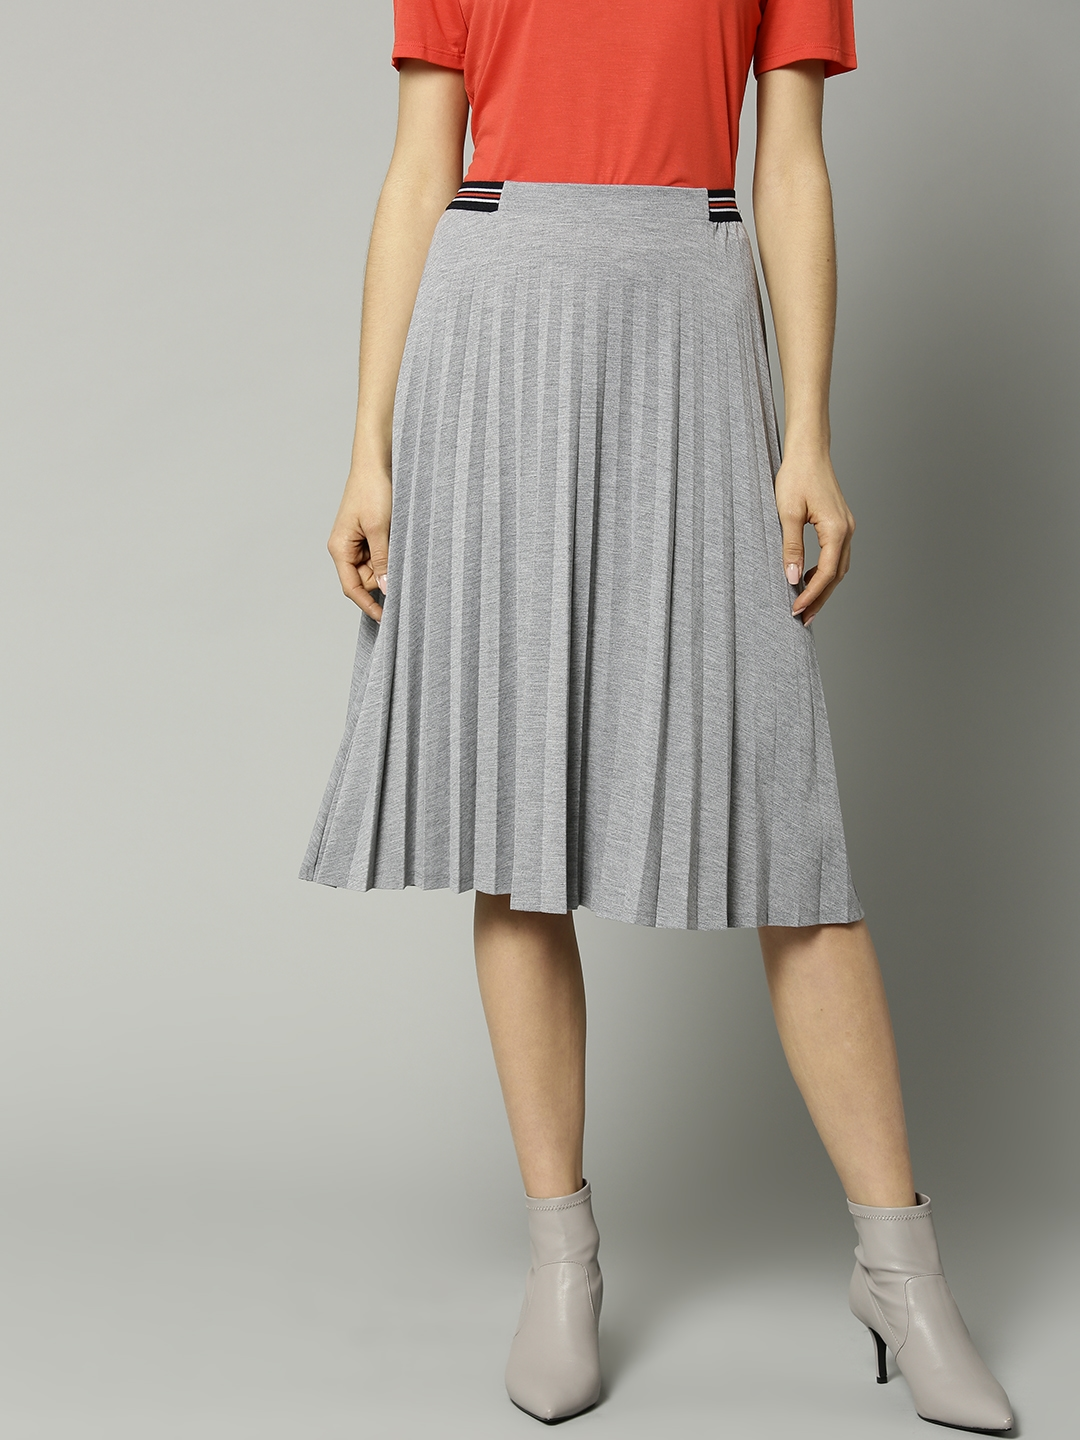 9f2eebbe0d Marks & Spencer Women Grey Melange Solid Accordion Pleated A-Line Skirt